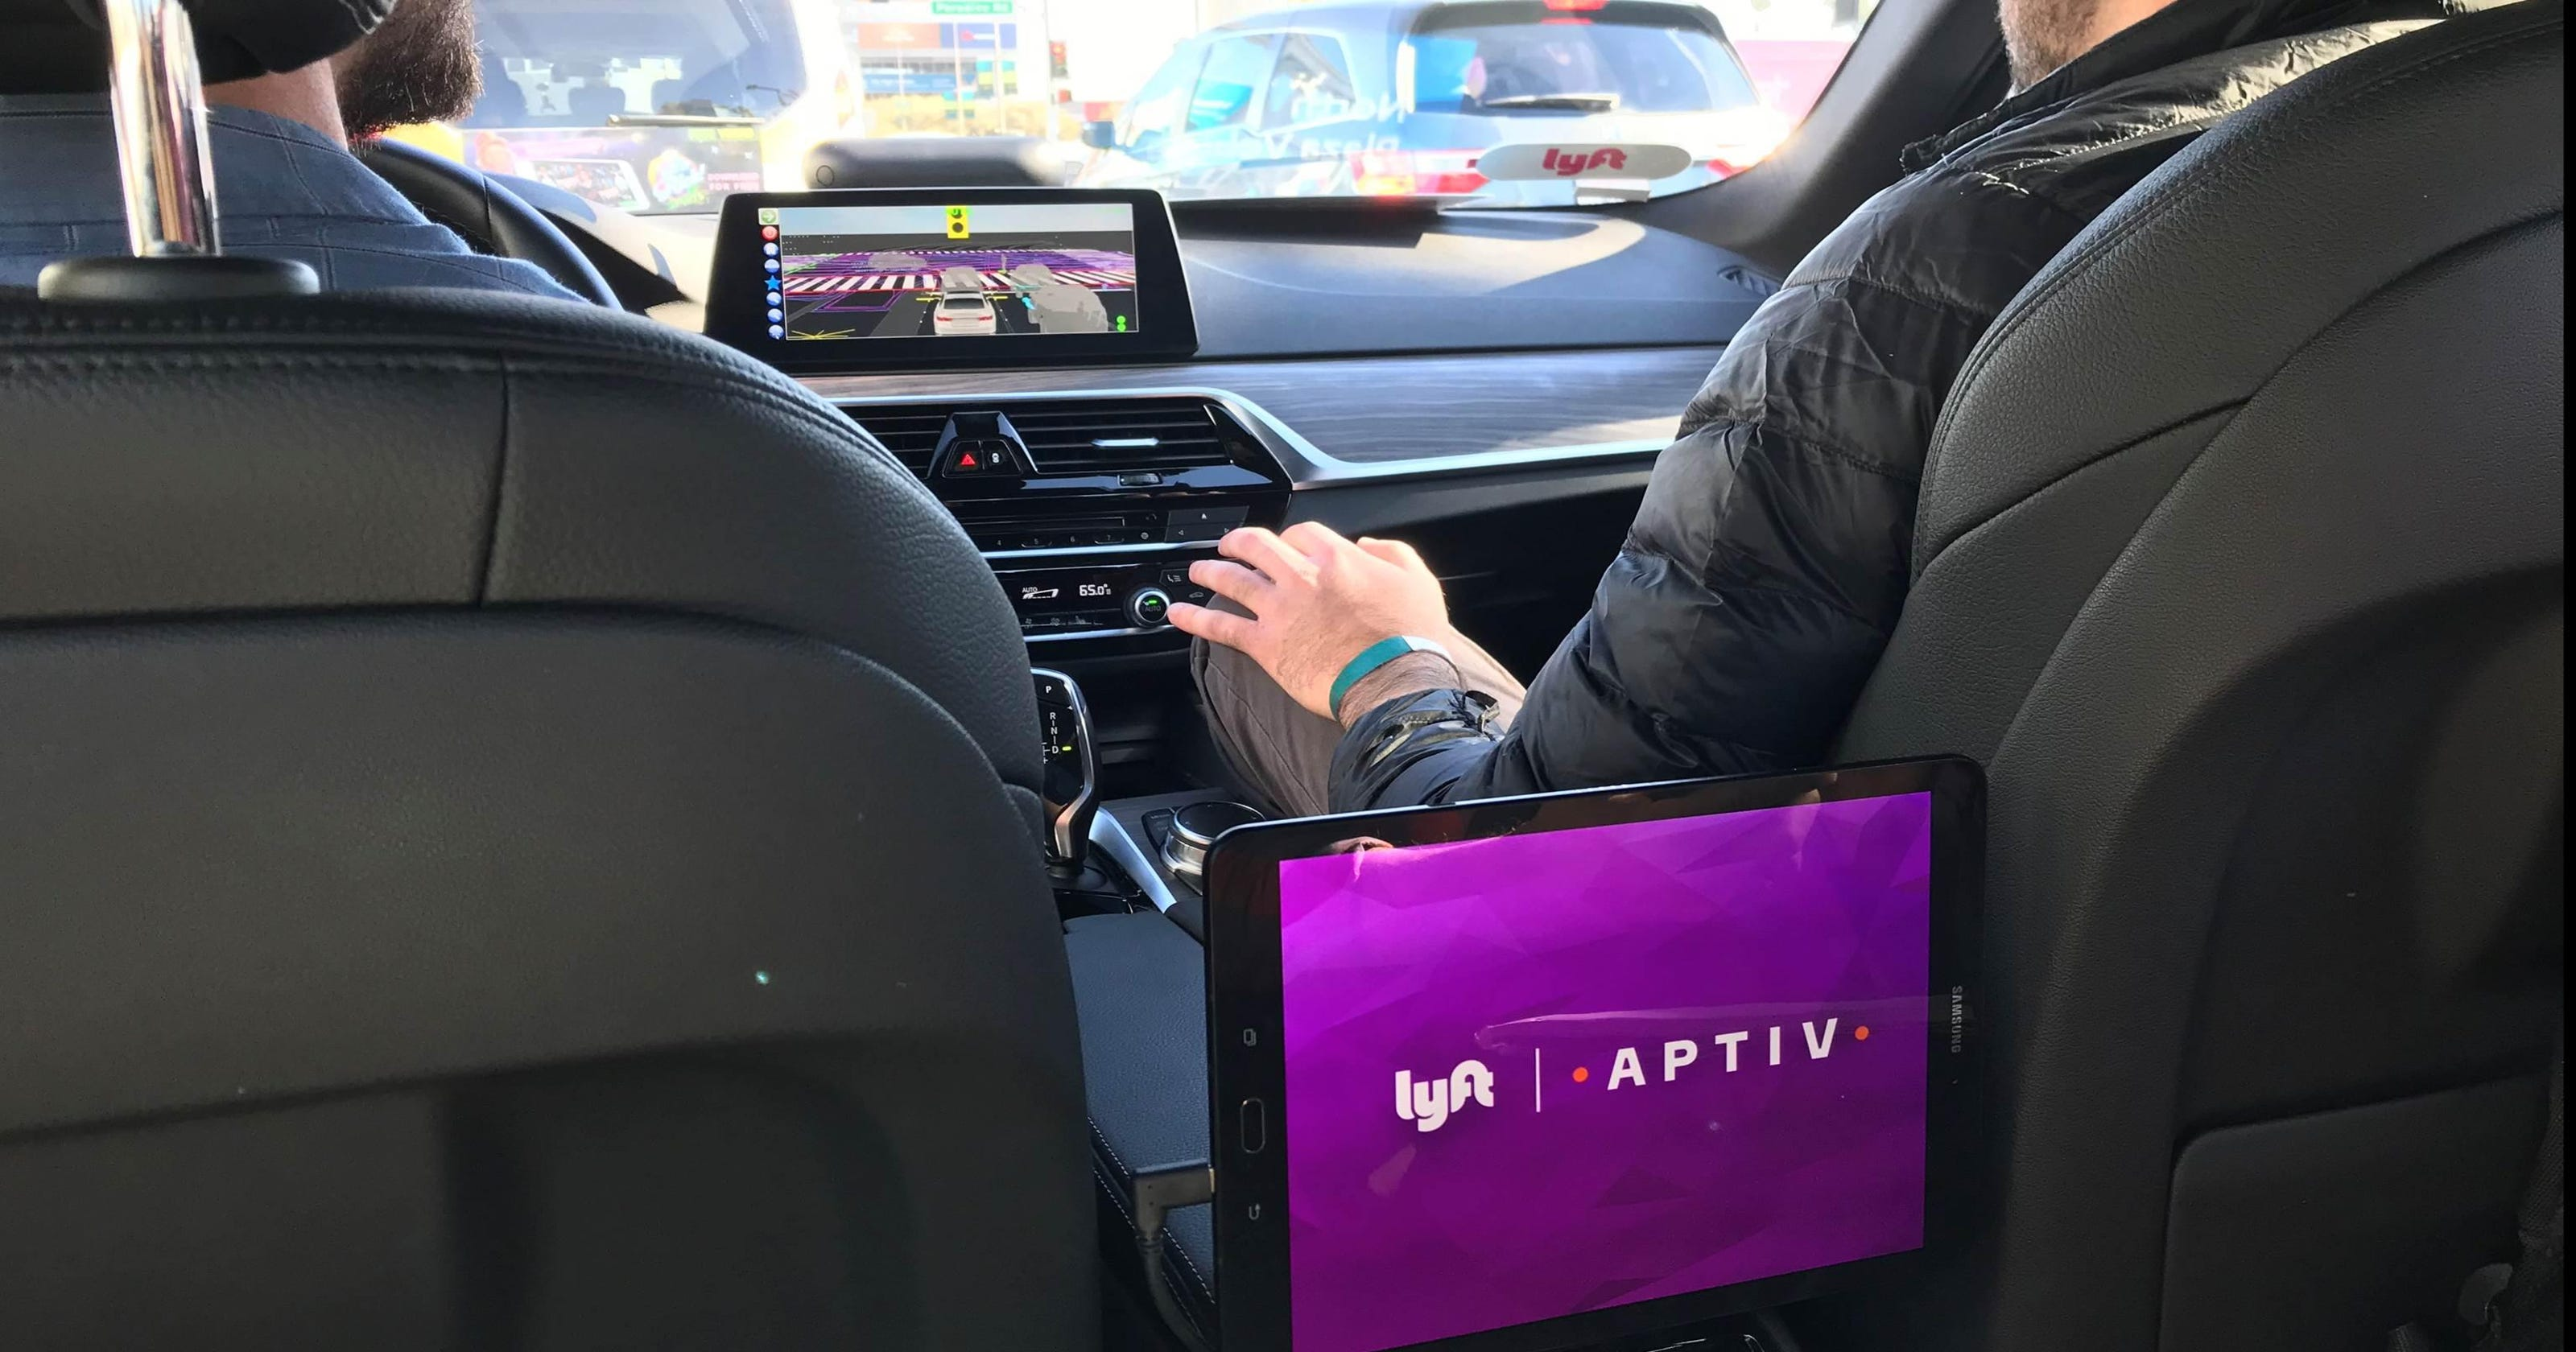 Aptiv Puts Its Self Driving System To Work At Ces